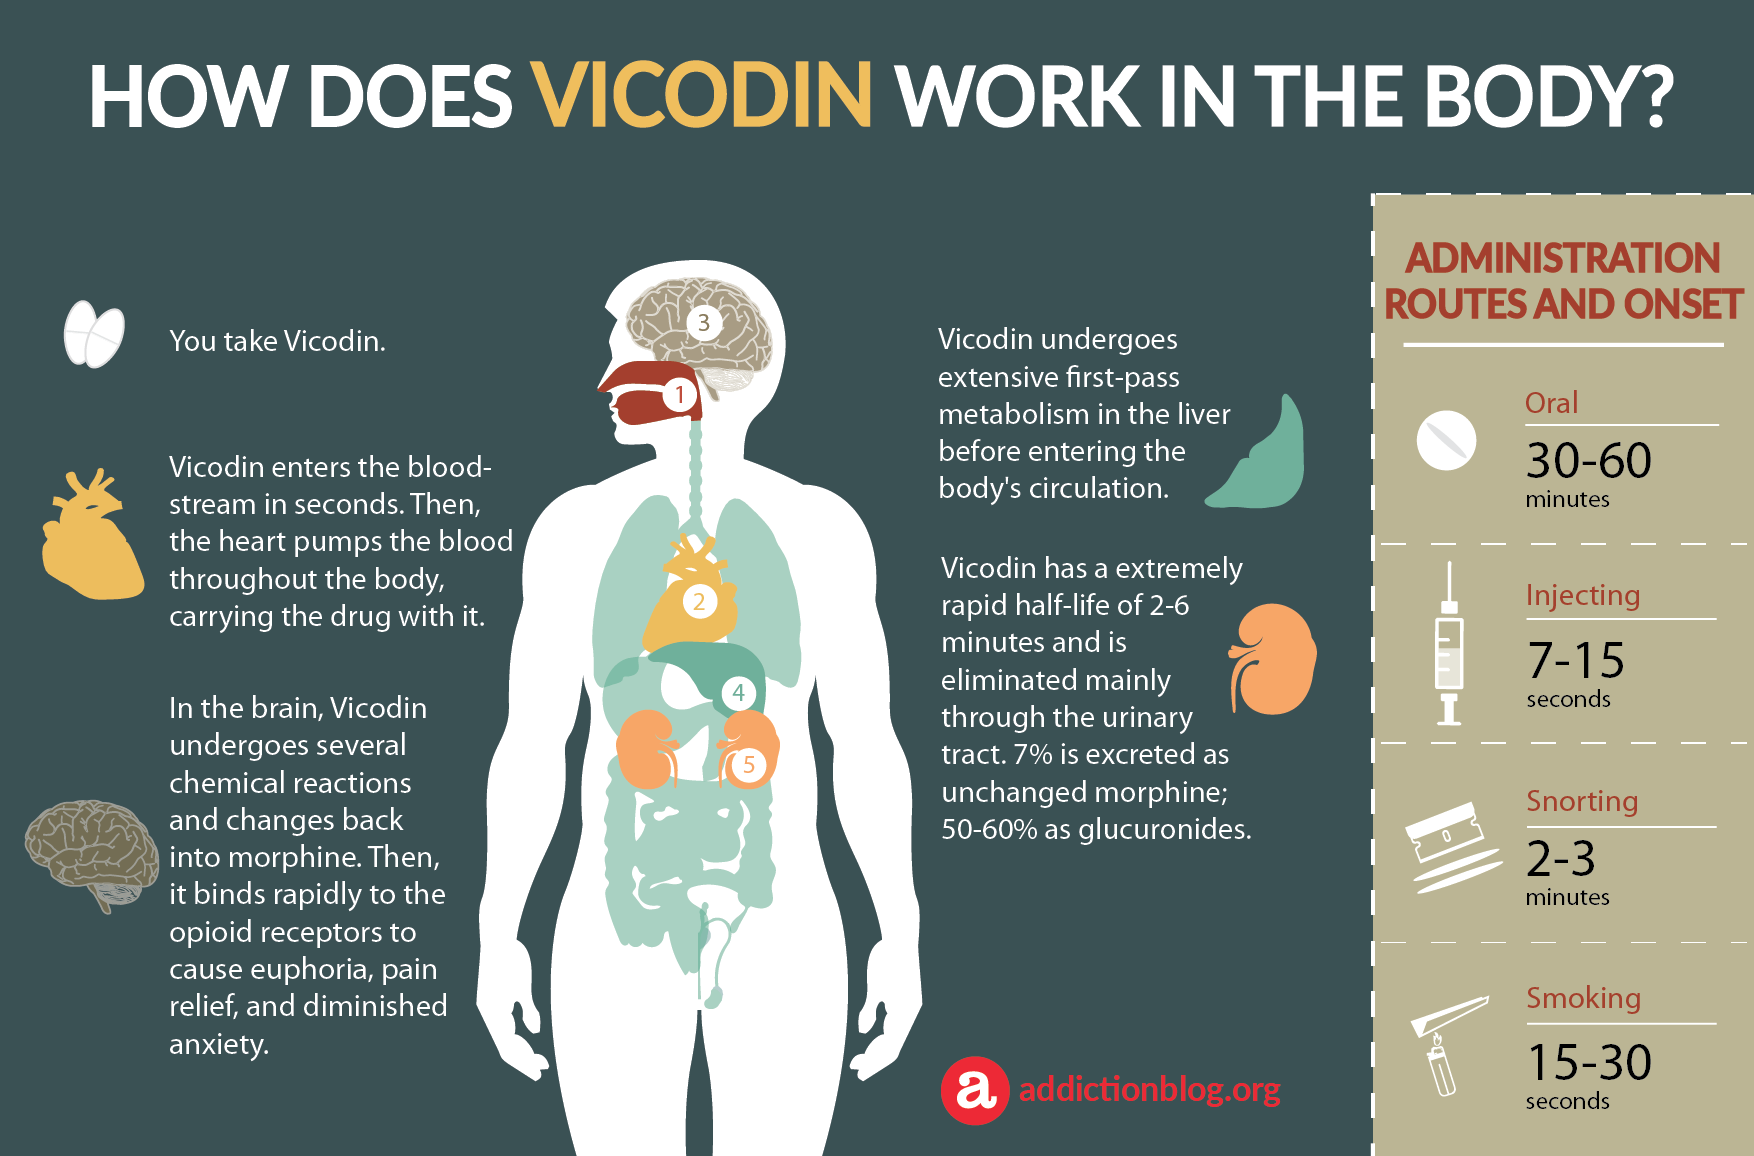 Vicodin Metabolism: How Vicodin Works in the Body (INFOGPRAPHIC)